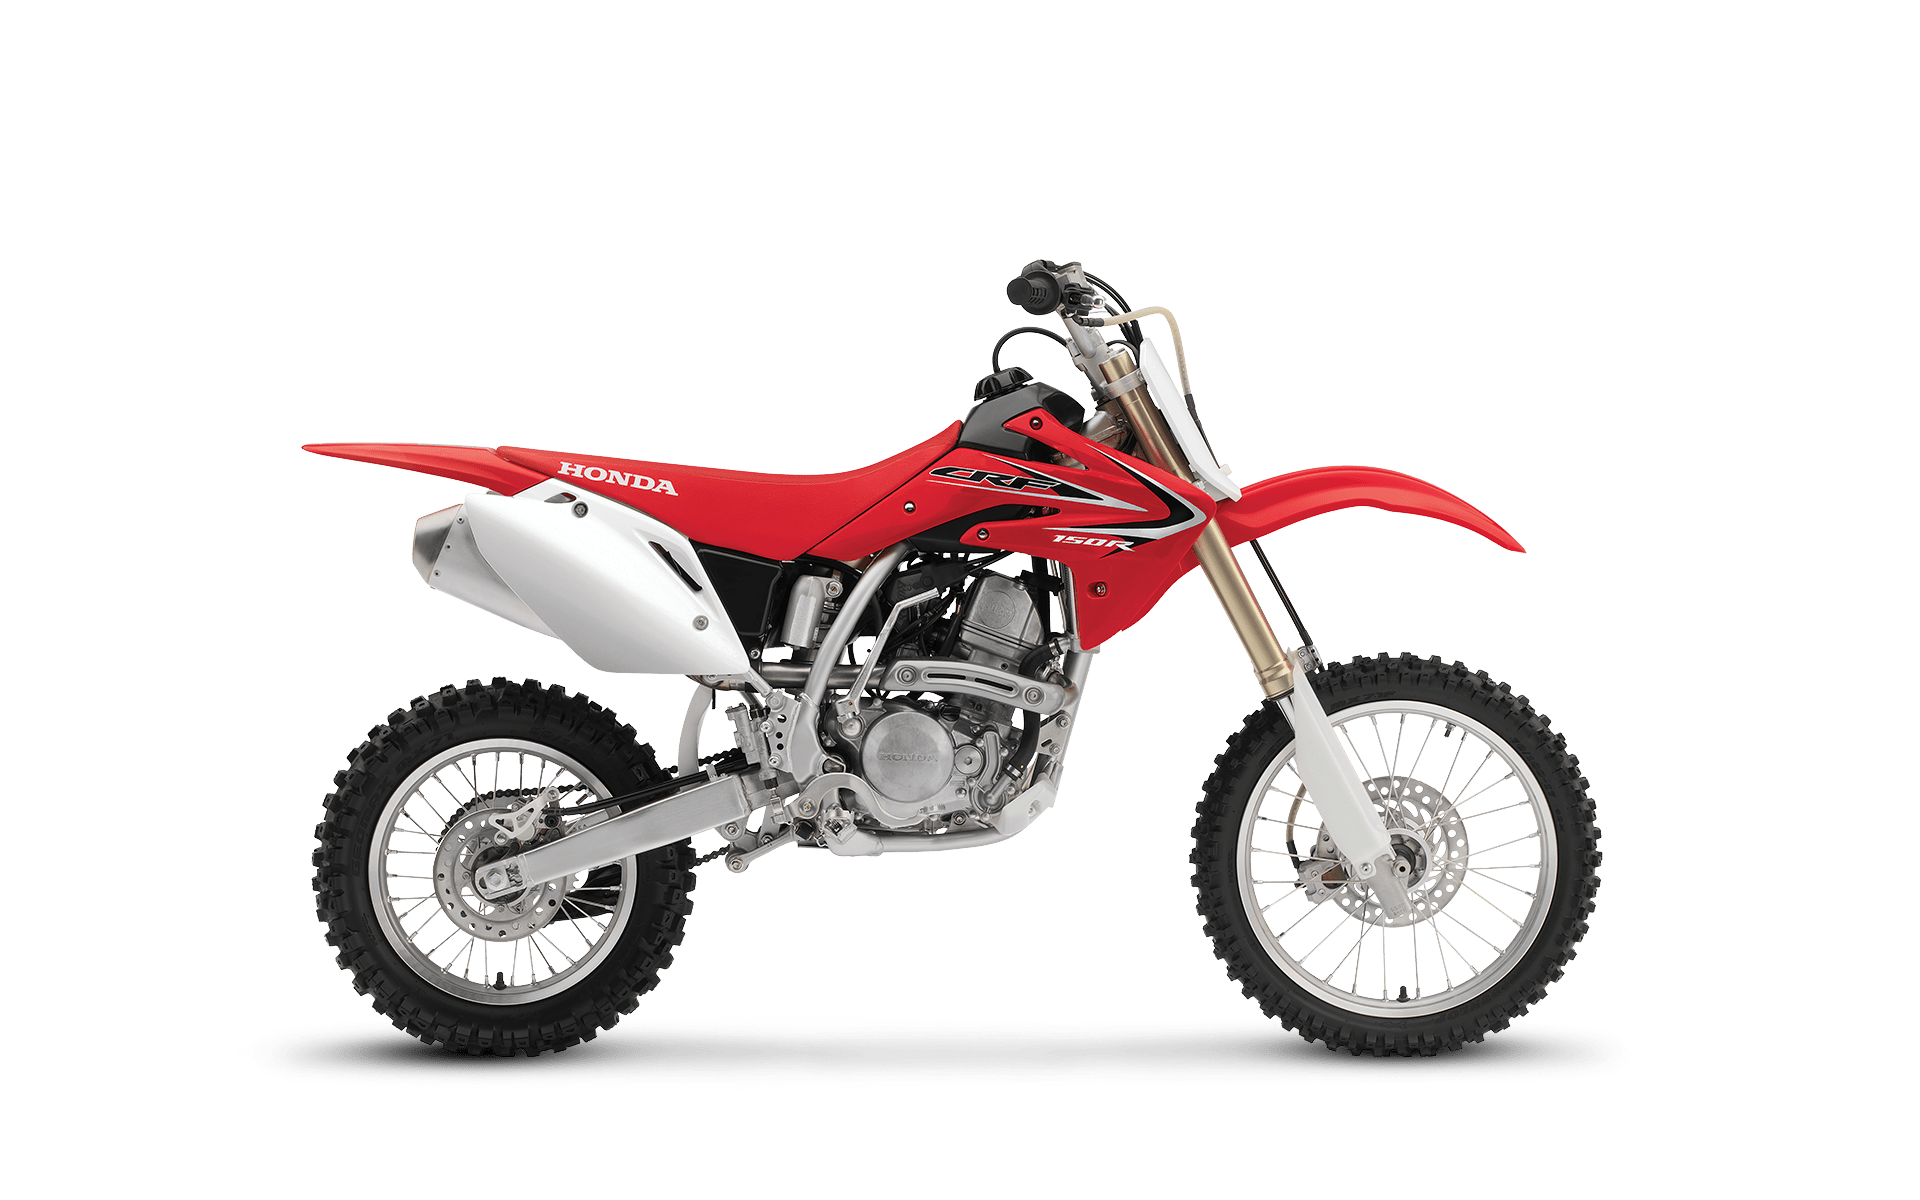 Honda Xr 150 Dirt Bike